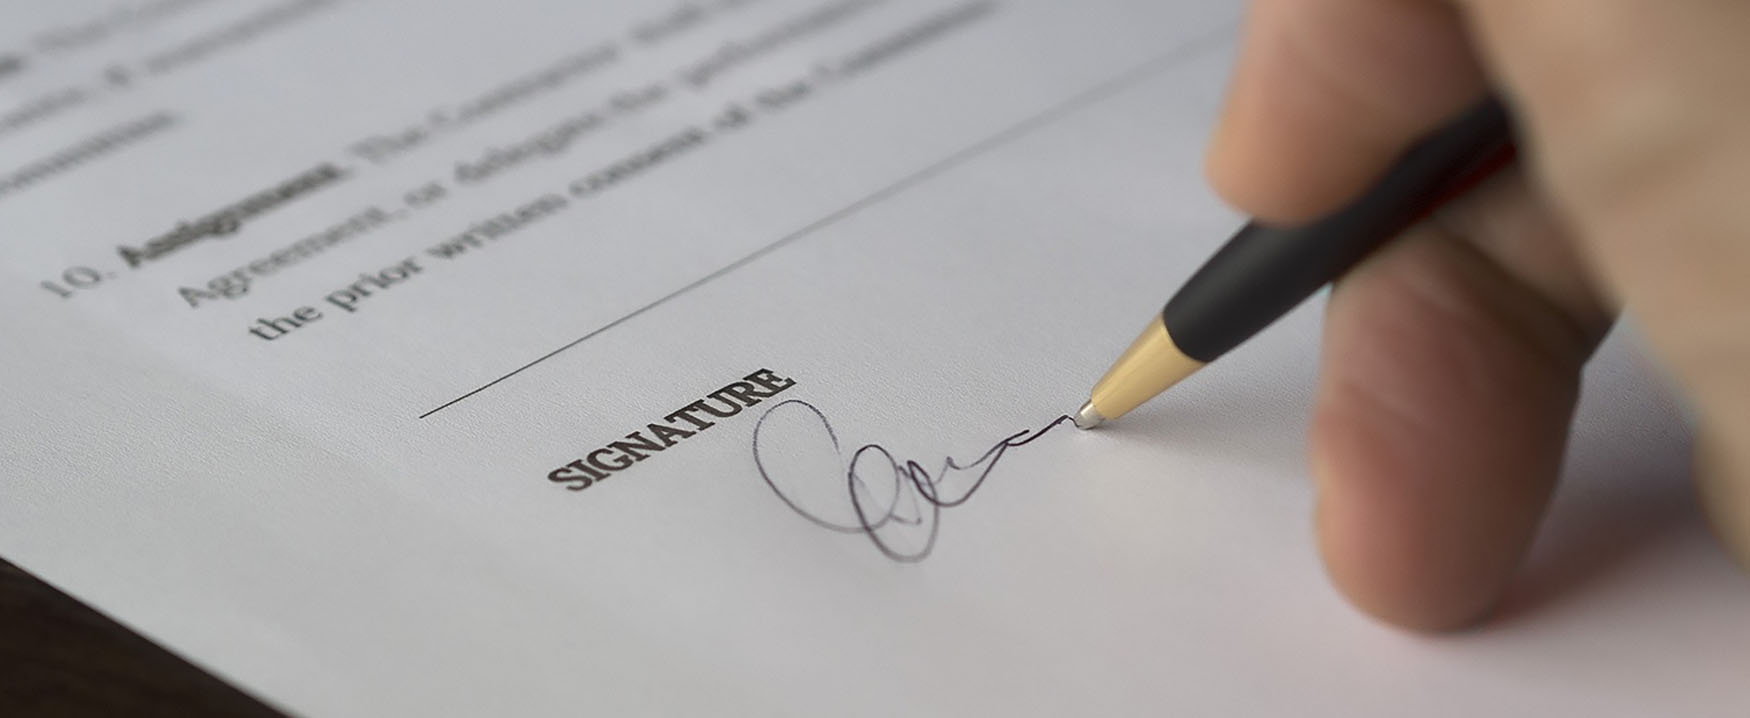 A close up of a signature line on a contract, with a person's hand signing it.